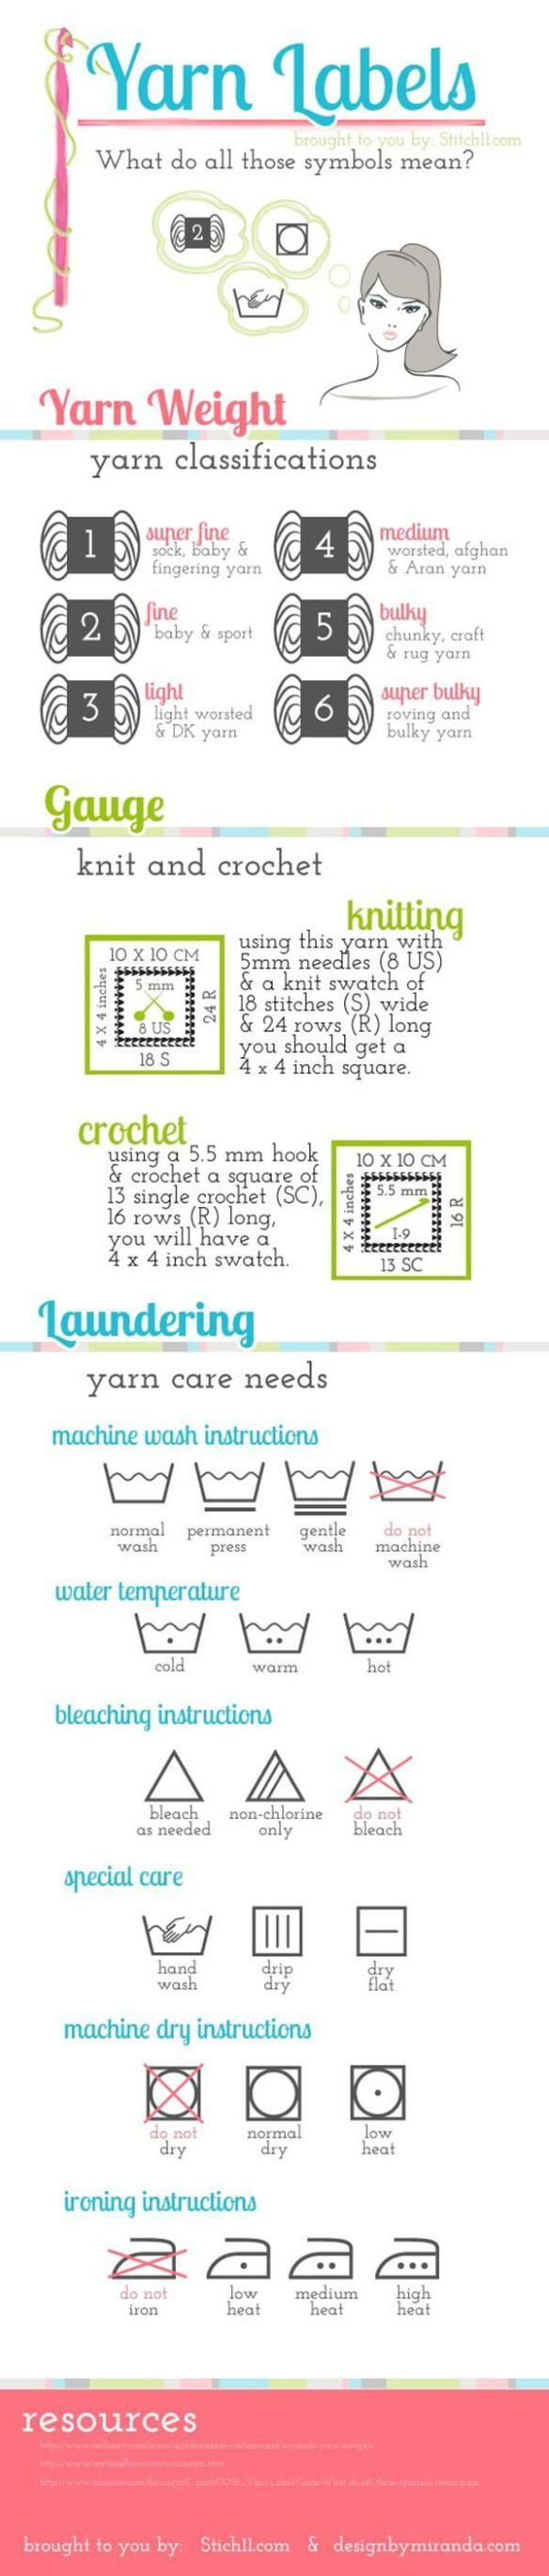 Understand Yarn Labels - are you searching for hacks about knitting for beginners? or crochet for beginners? these yarn hacks are designed to make your yarn crafts, yarn storage and crochet projects so much easier. how to choose yarn colours, matching yarn colors and making regular yarn much softer